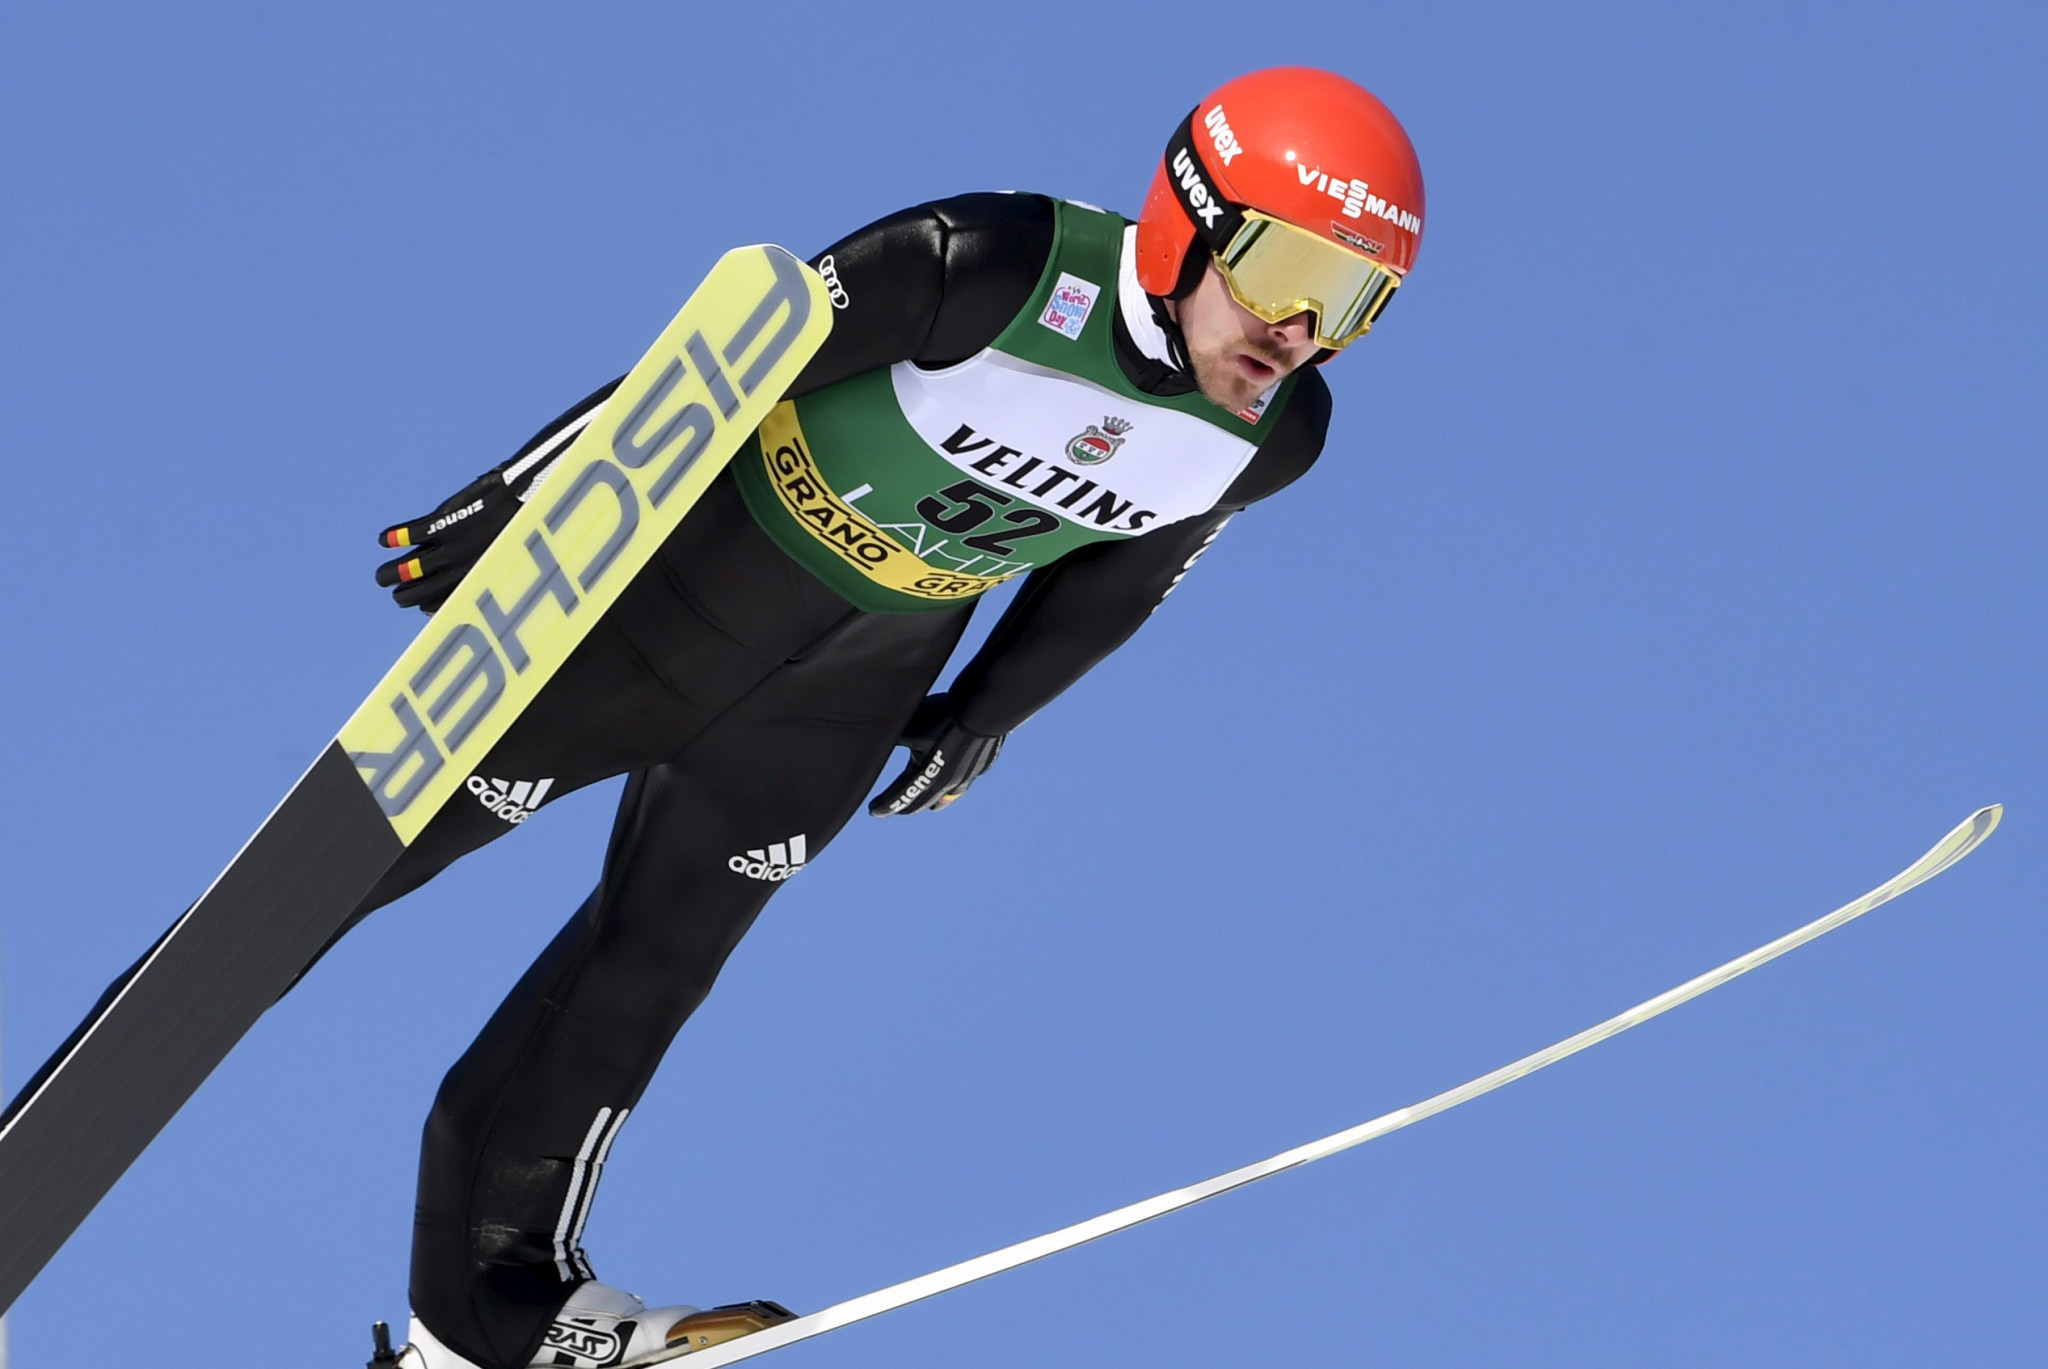 Fabian Riessle of Germany finished second in the FIS Nordic Combined World Cup in Oslo ©Getty Images